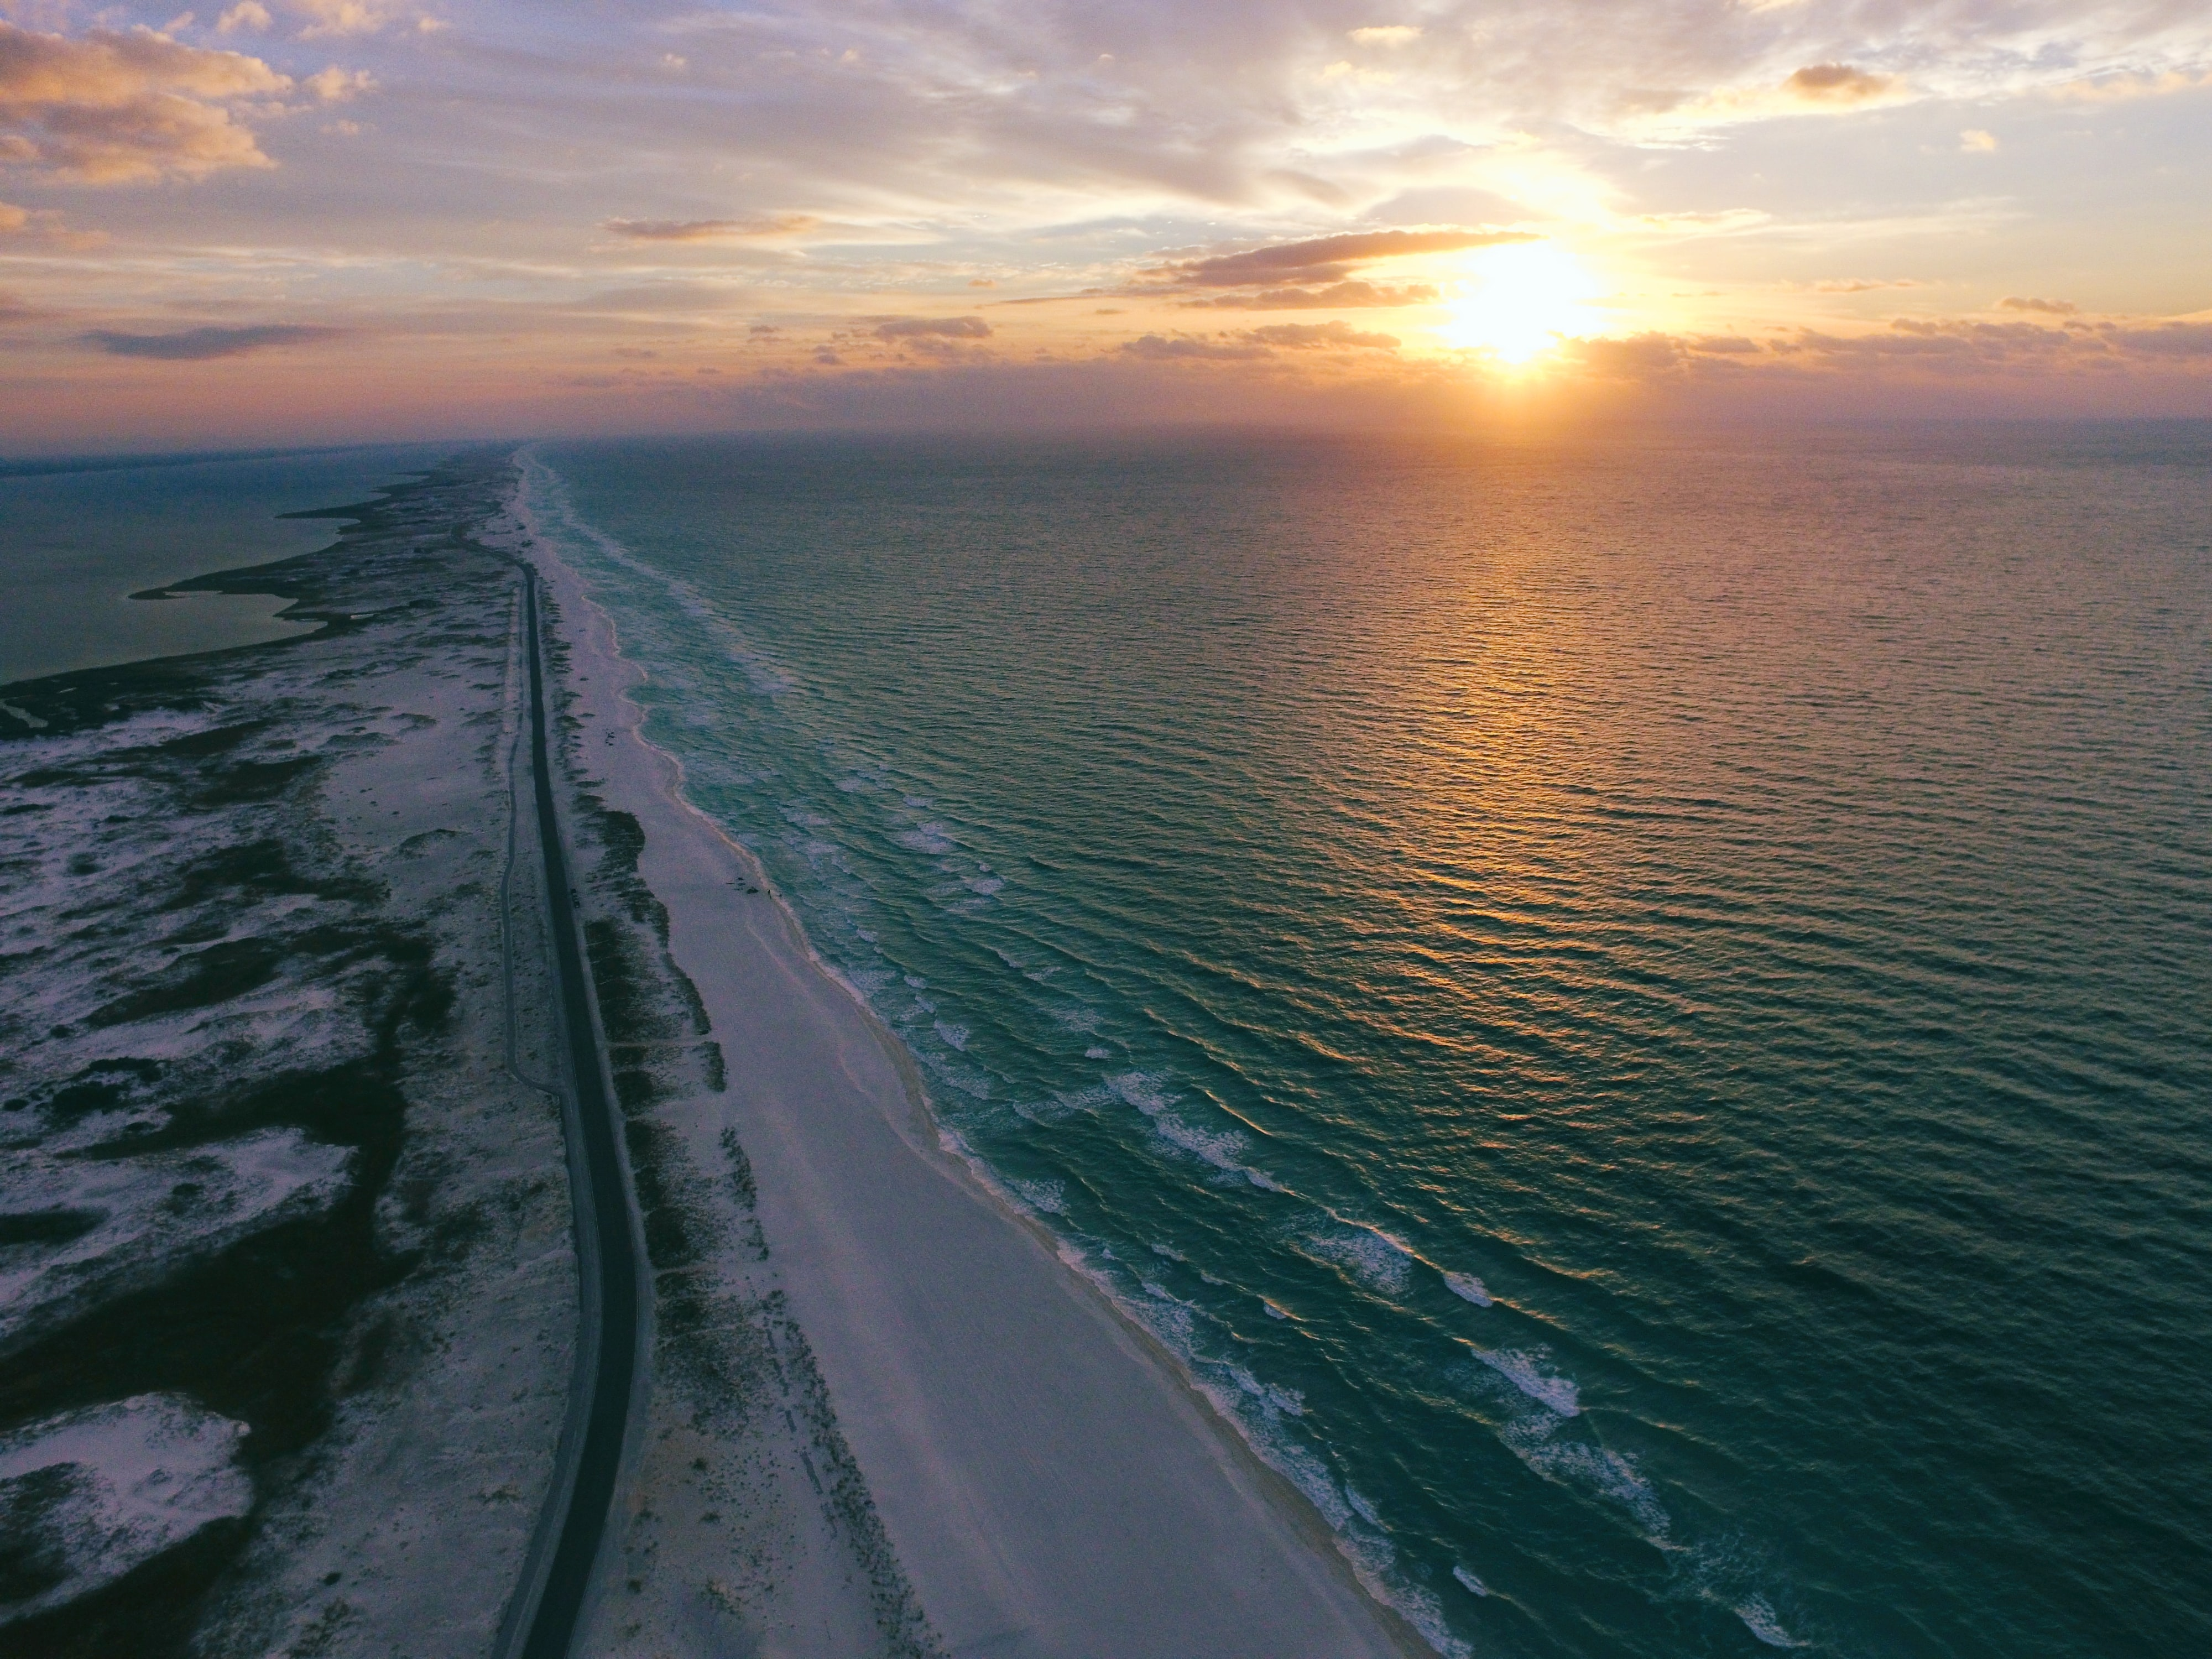 Drone view of an empty coastal road beside the beach, sun setting over rippling water